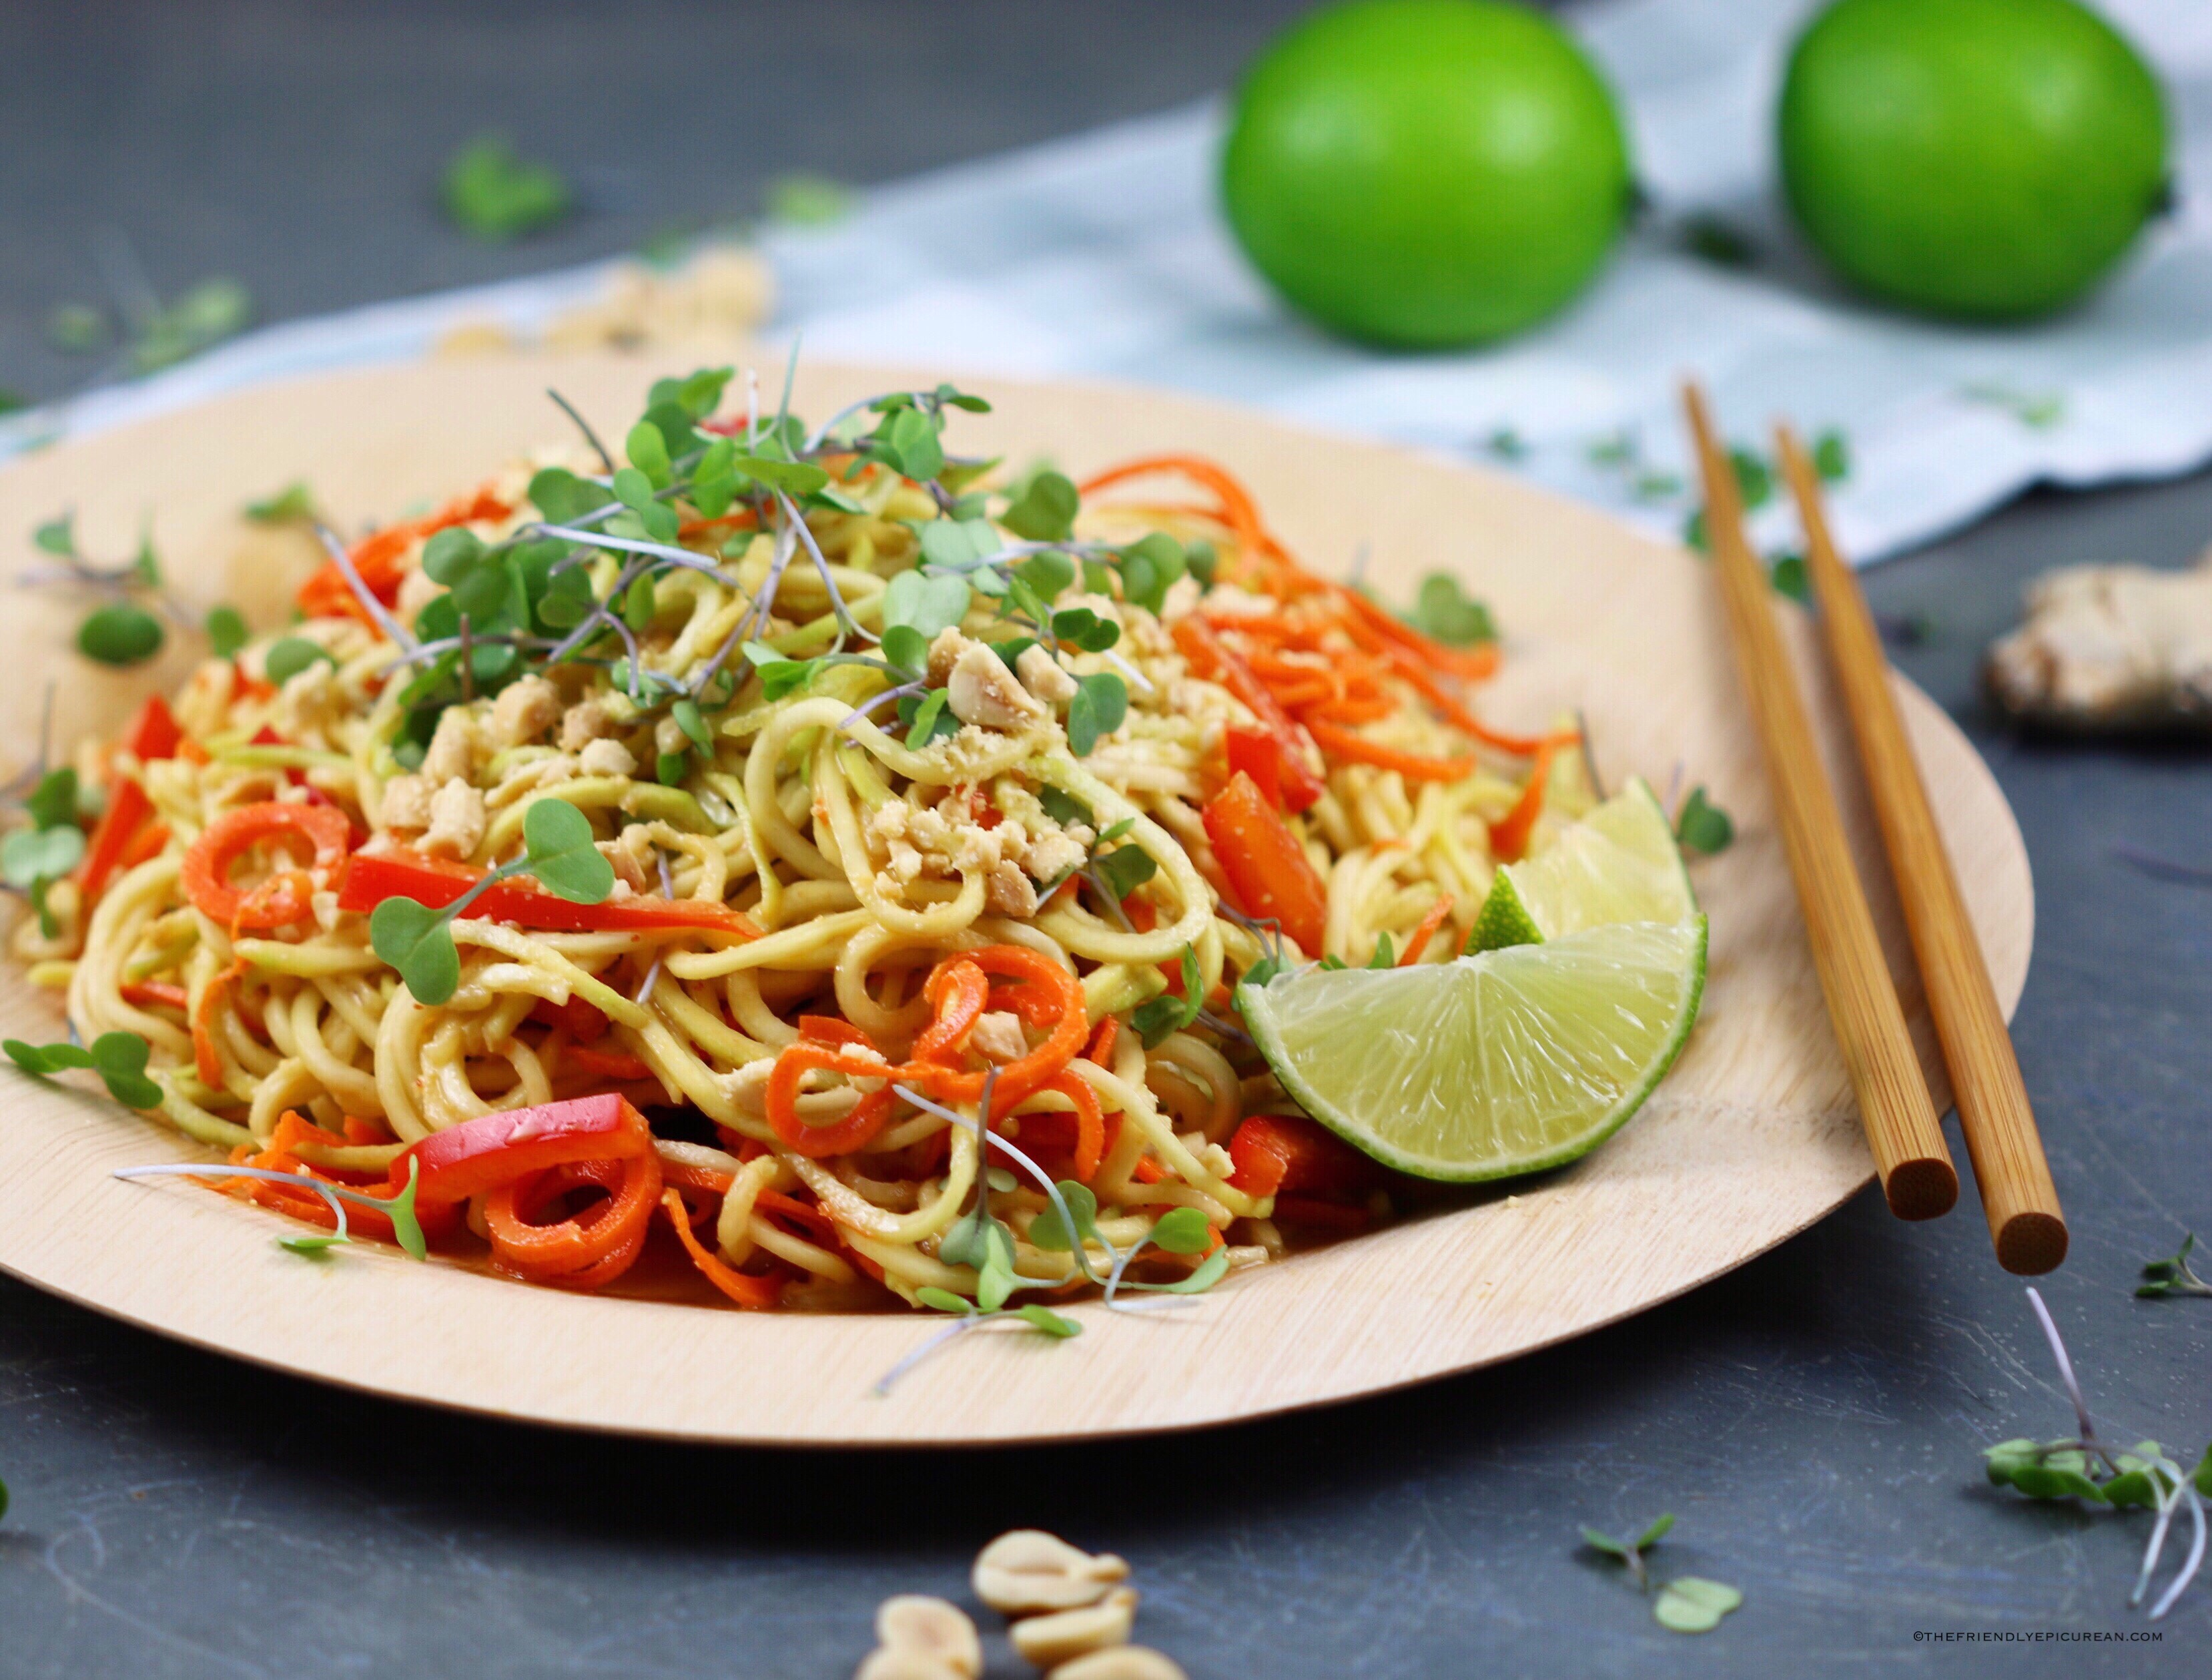 Spicy Peanut Zucchini Noodle Salad